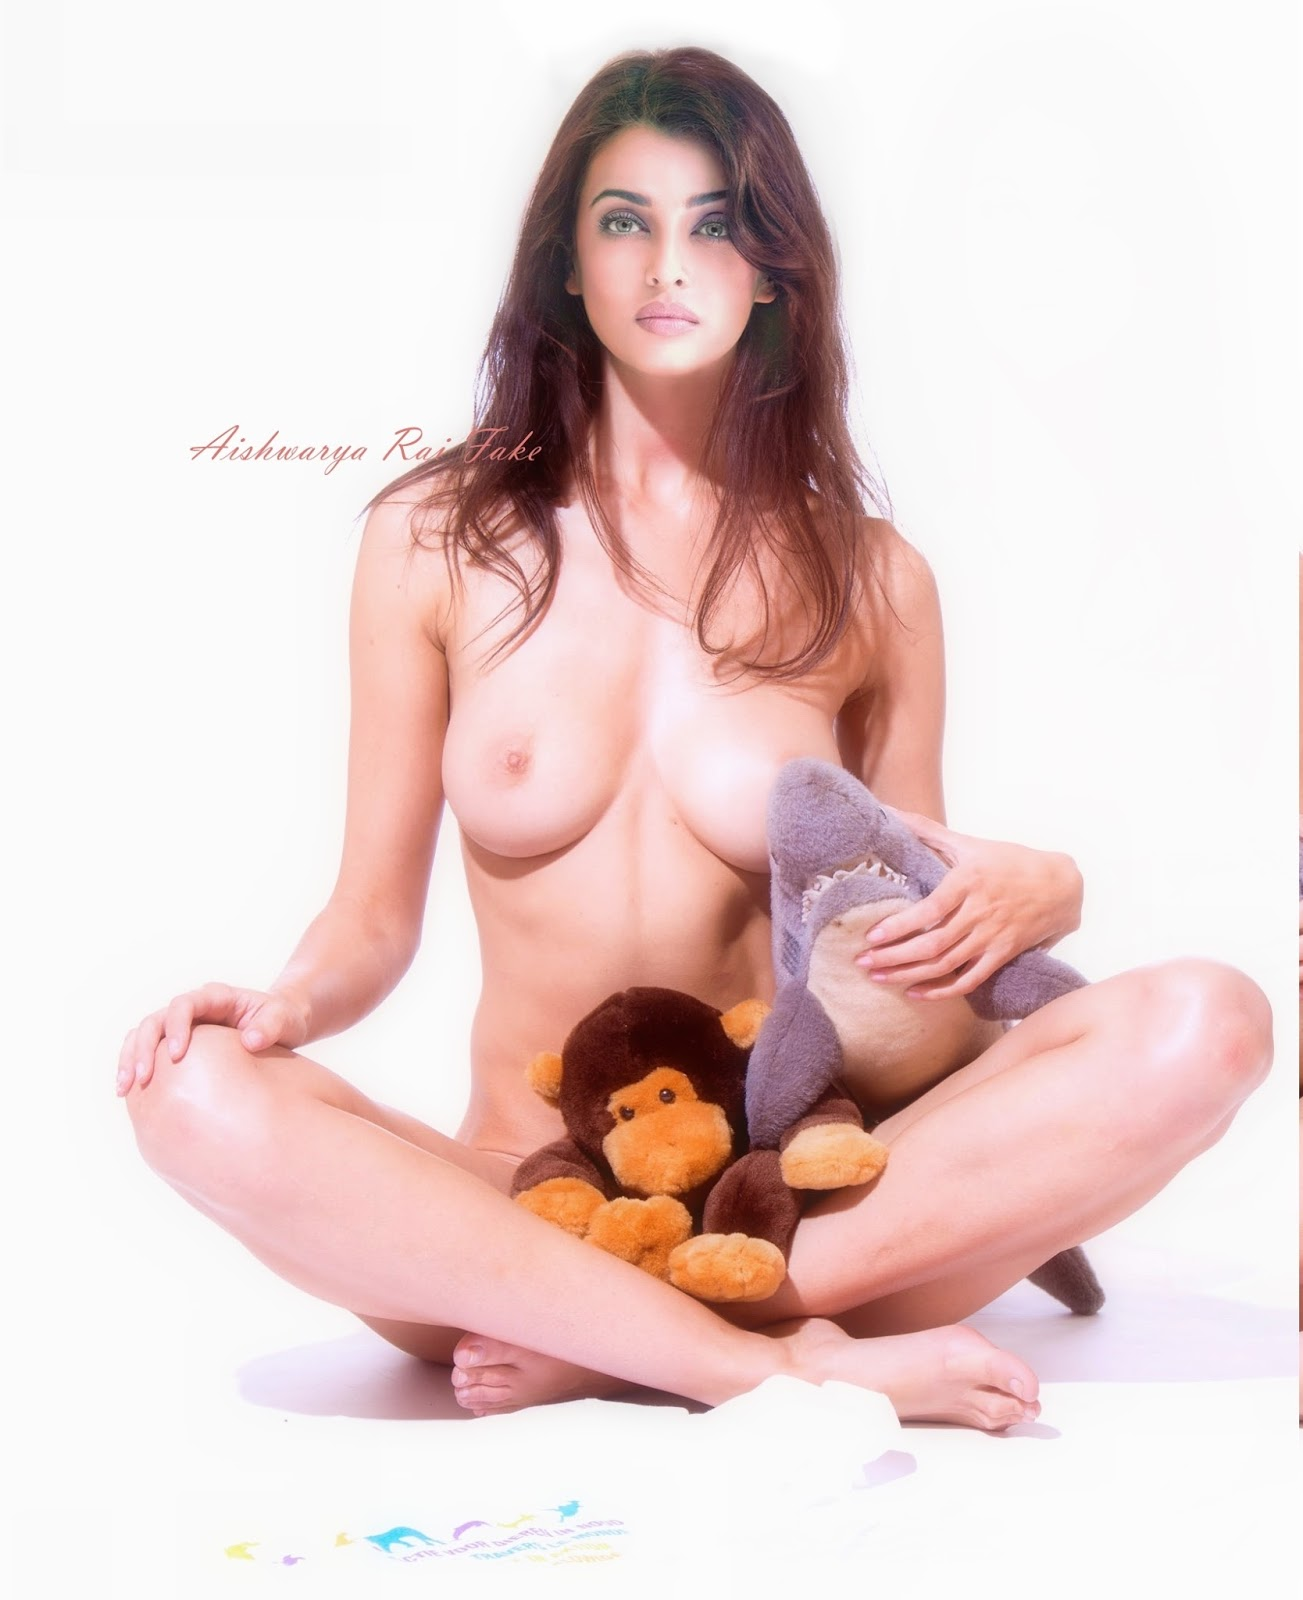 Xxx ashwaria photo rai sexy